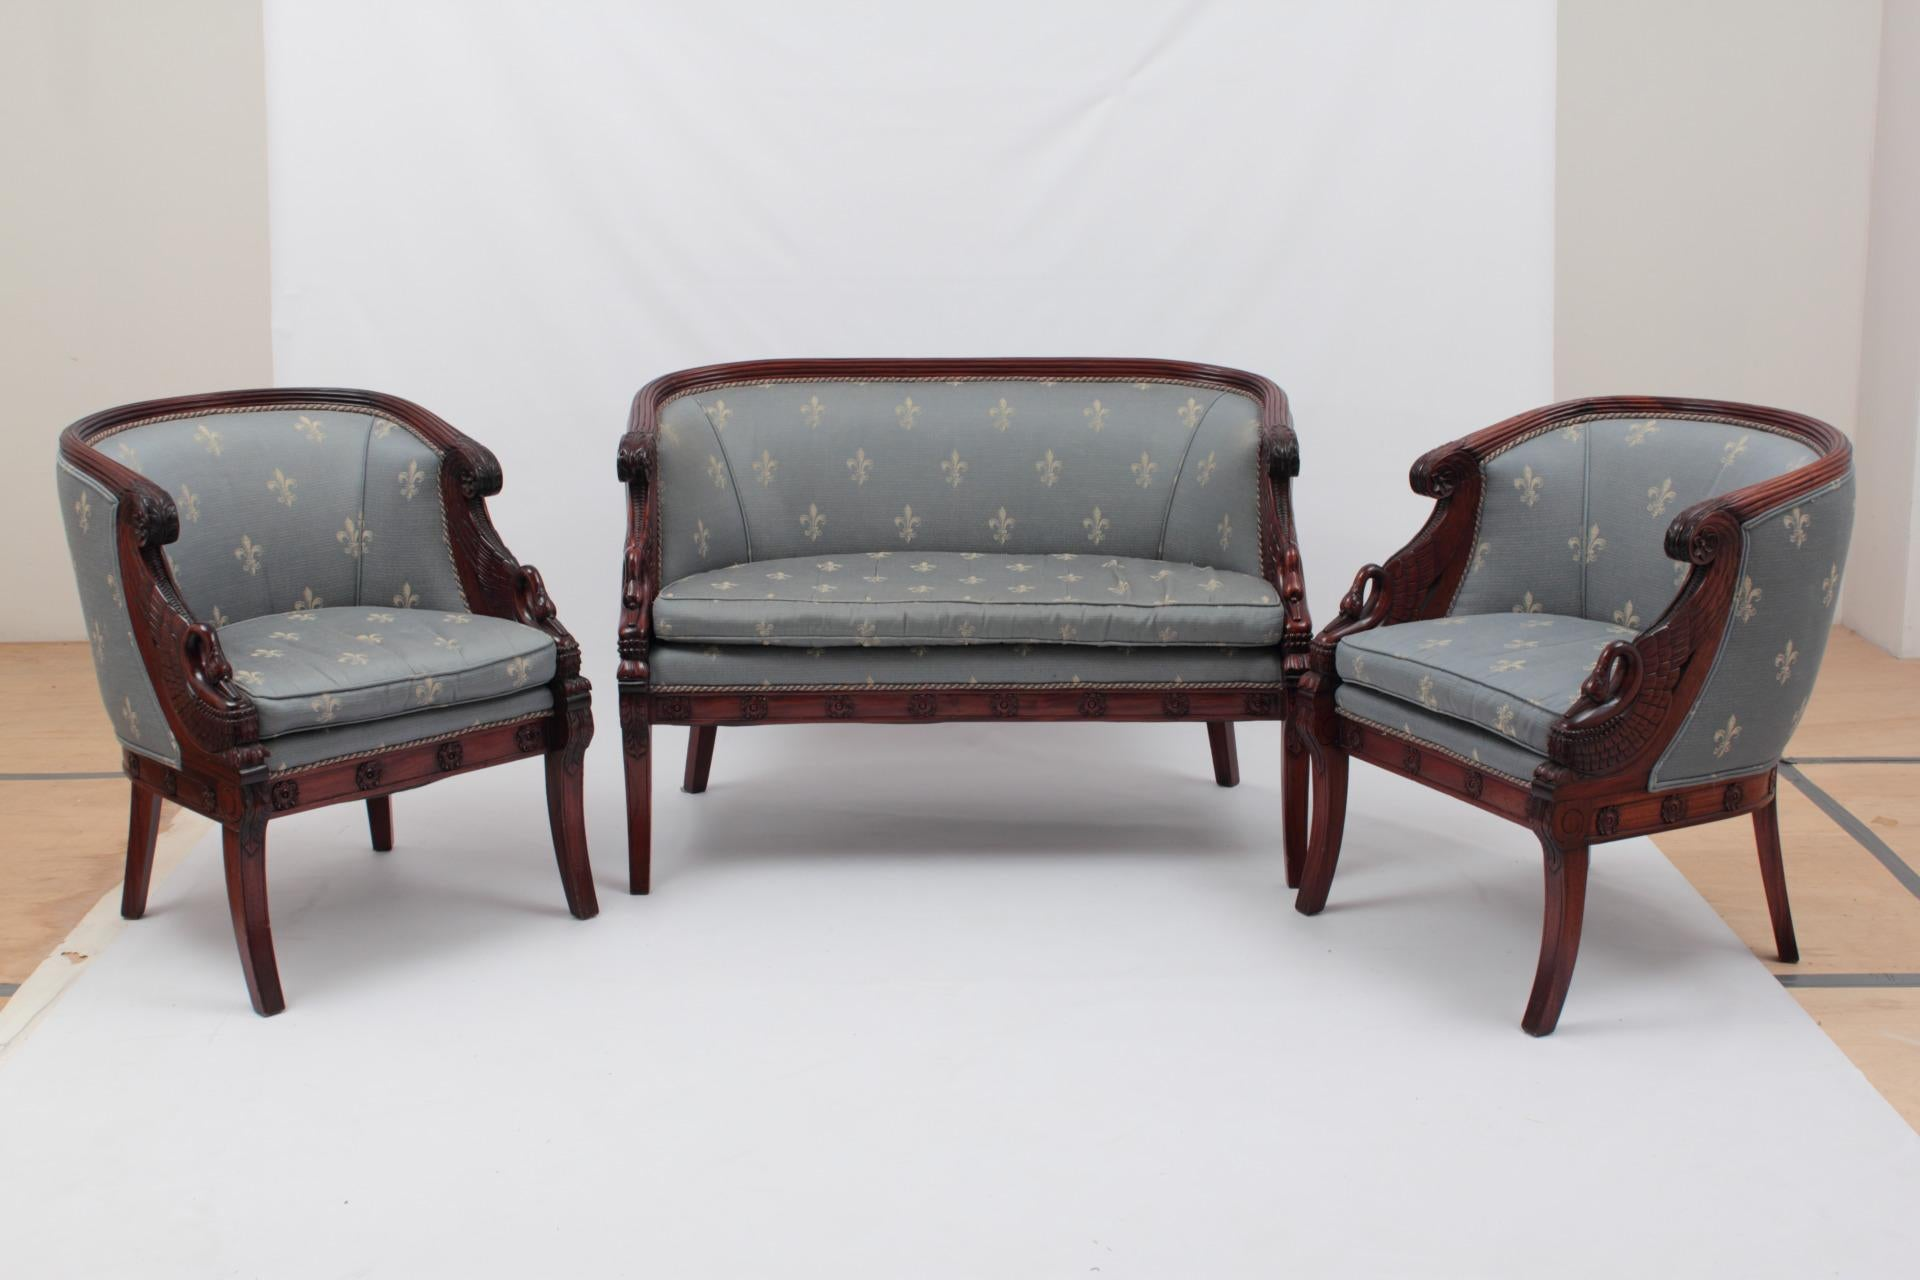 Attirant Empire Style Sofa U0026 Chairs   Set Of 3   Image 2 ...